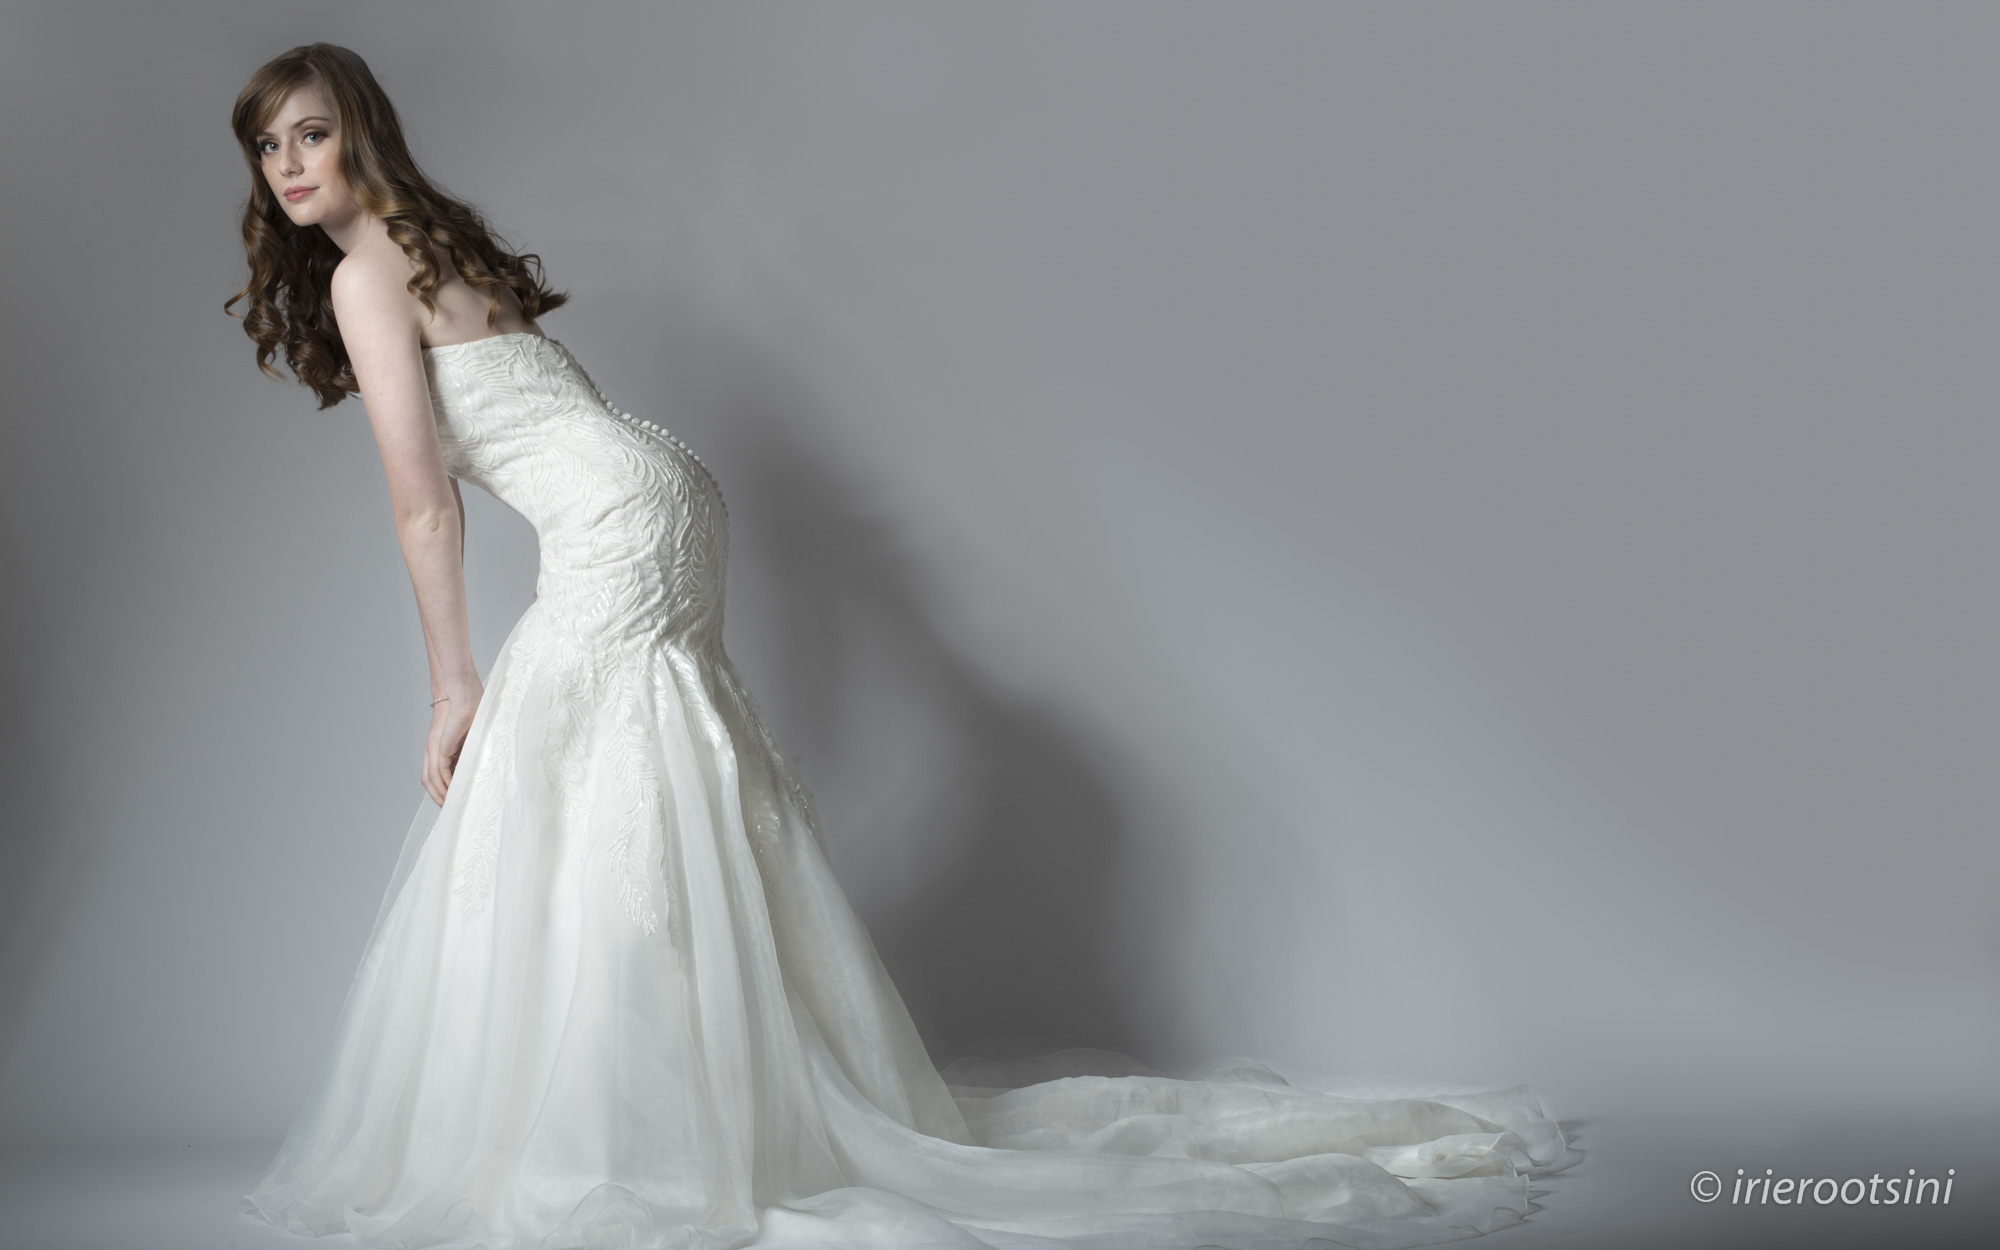 Wedding-Gown-Model-Simply-Brides-Photoshoot